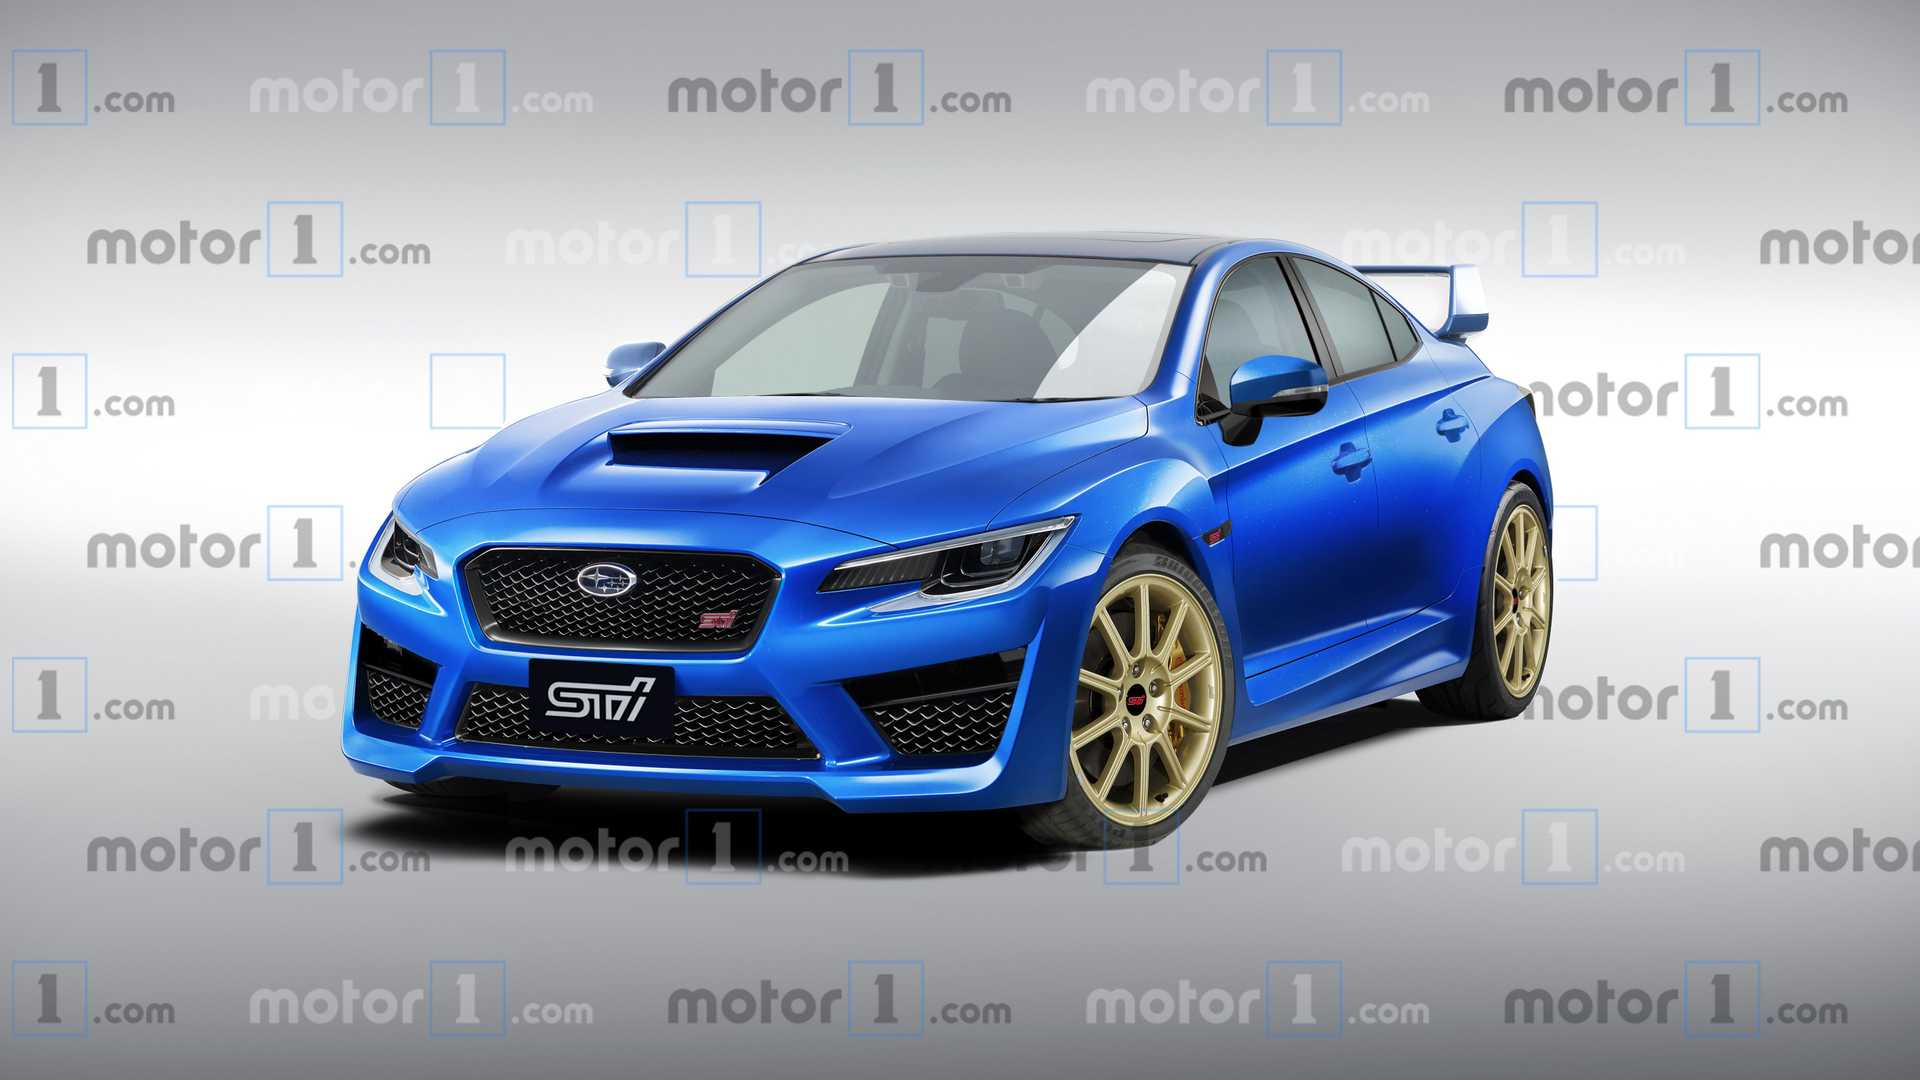 45 Gallery of Subaru Sti 2020 Horsepower Images with Subaru Sti 2020 Horsepower